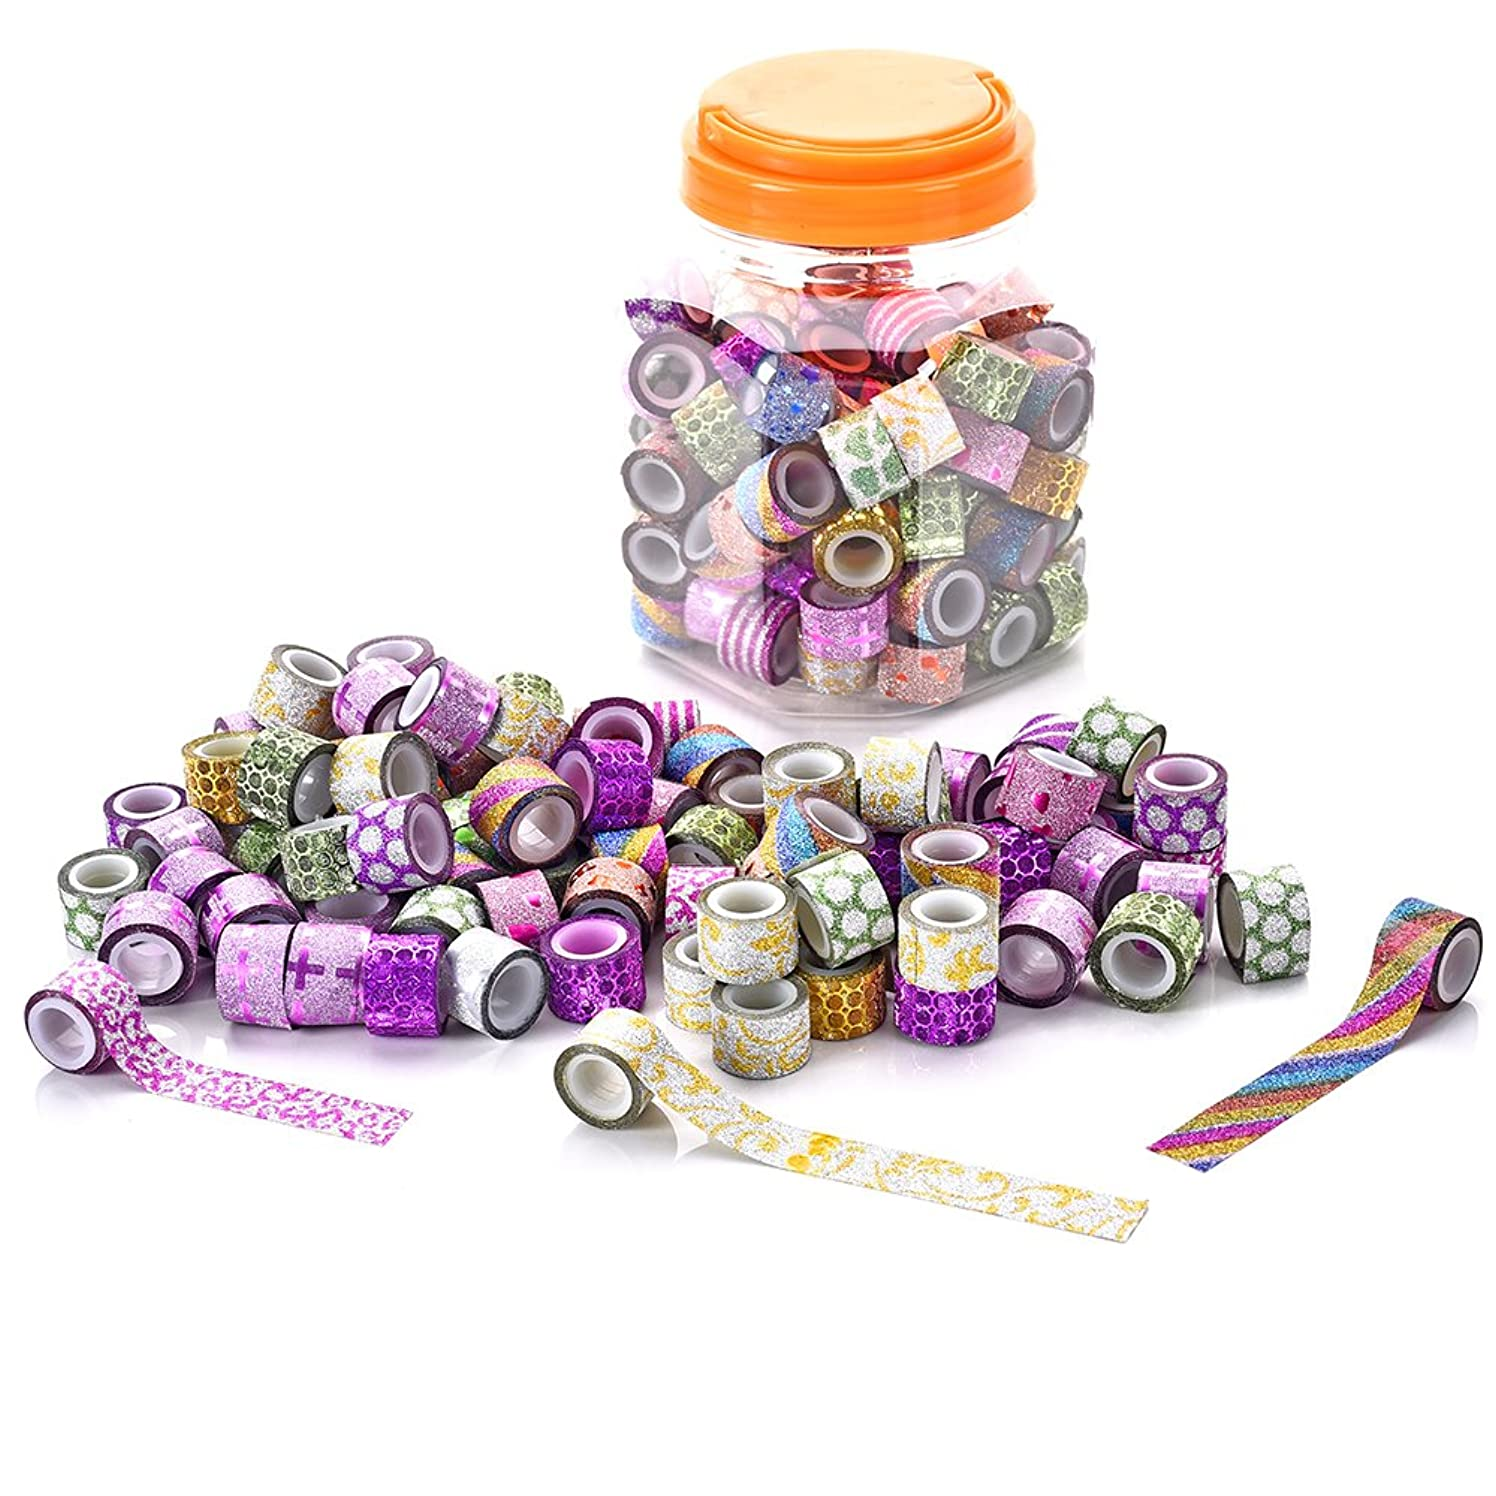 Dalus 90 Rolls Washi Tapes Set,Decorative Mini Masking Washi Tapes for DIY Crafts and Kid Gifts